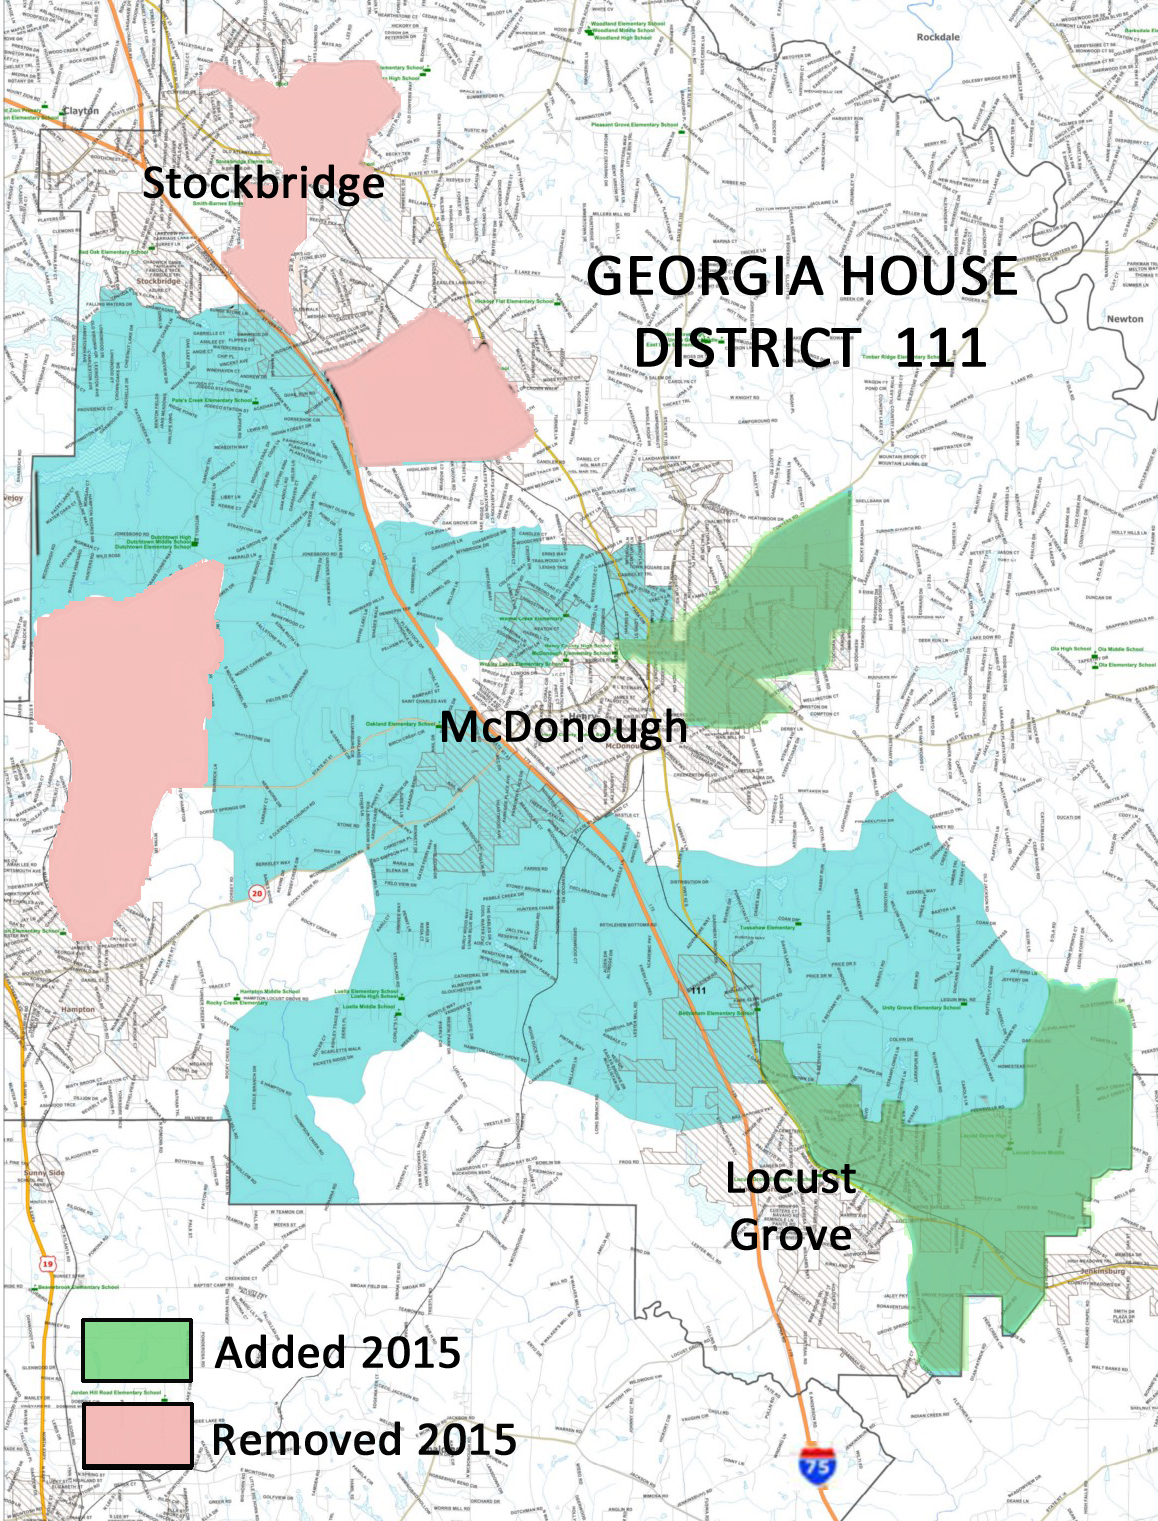 GA House District 111 2015 Changes